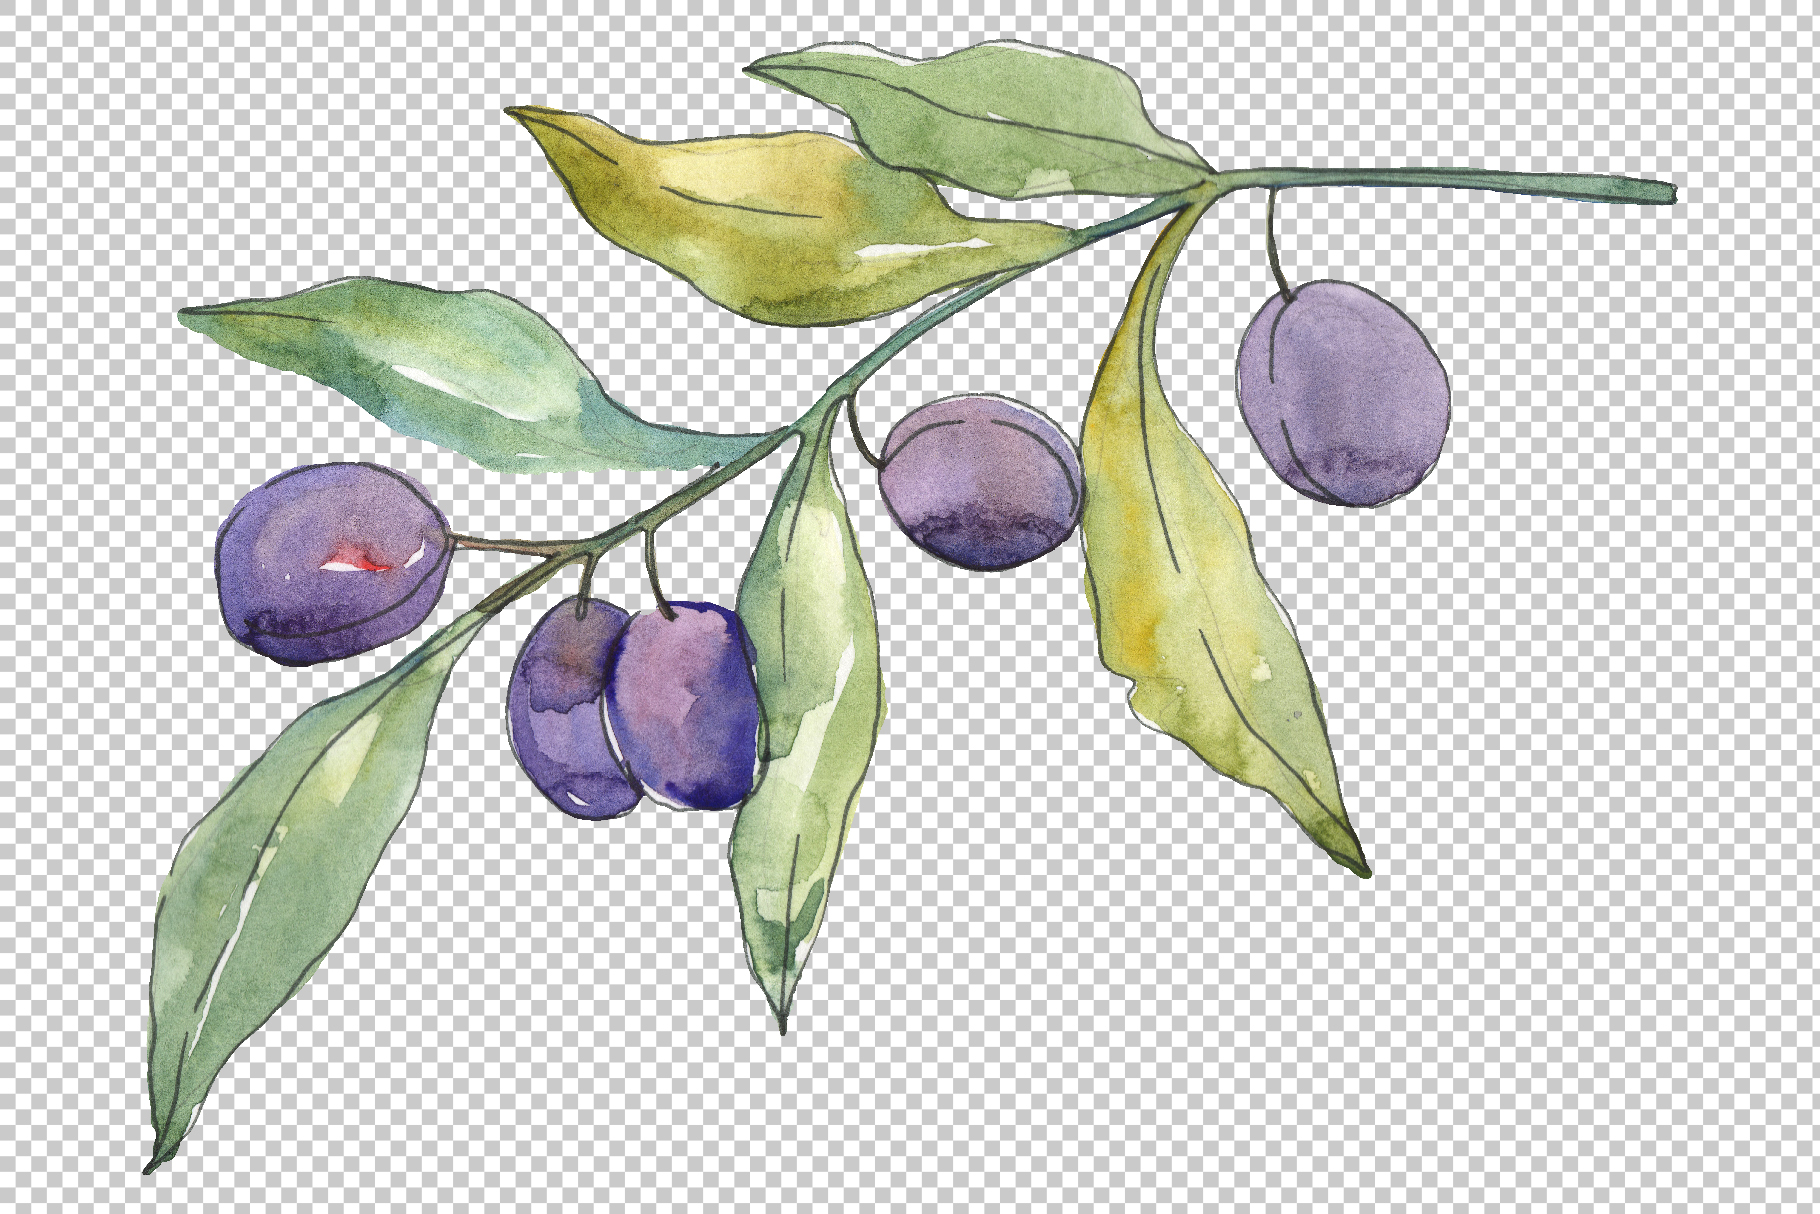 Olives 3 Watercolor png example image 4